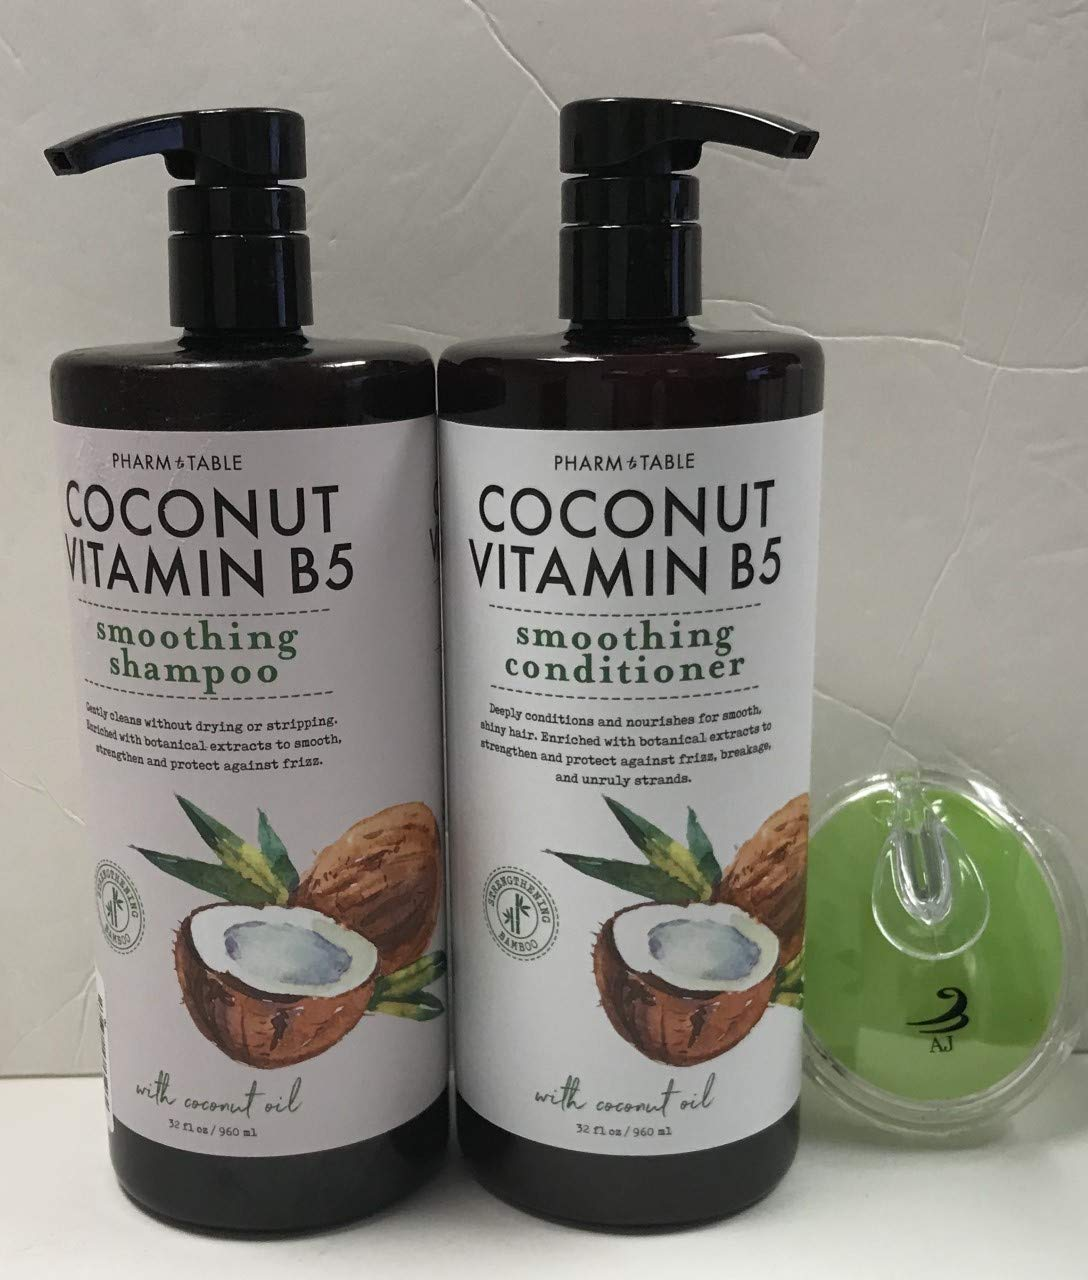 Pharm & Table - Coconut Vitamin B5 Smoothing Shampoo and Conditioner